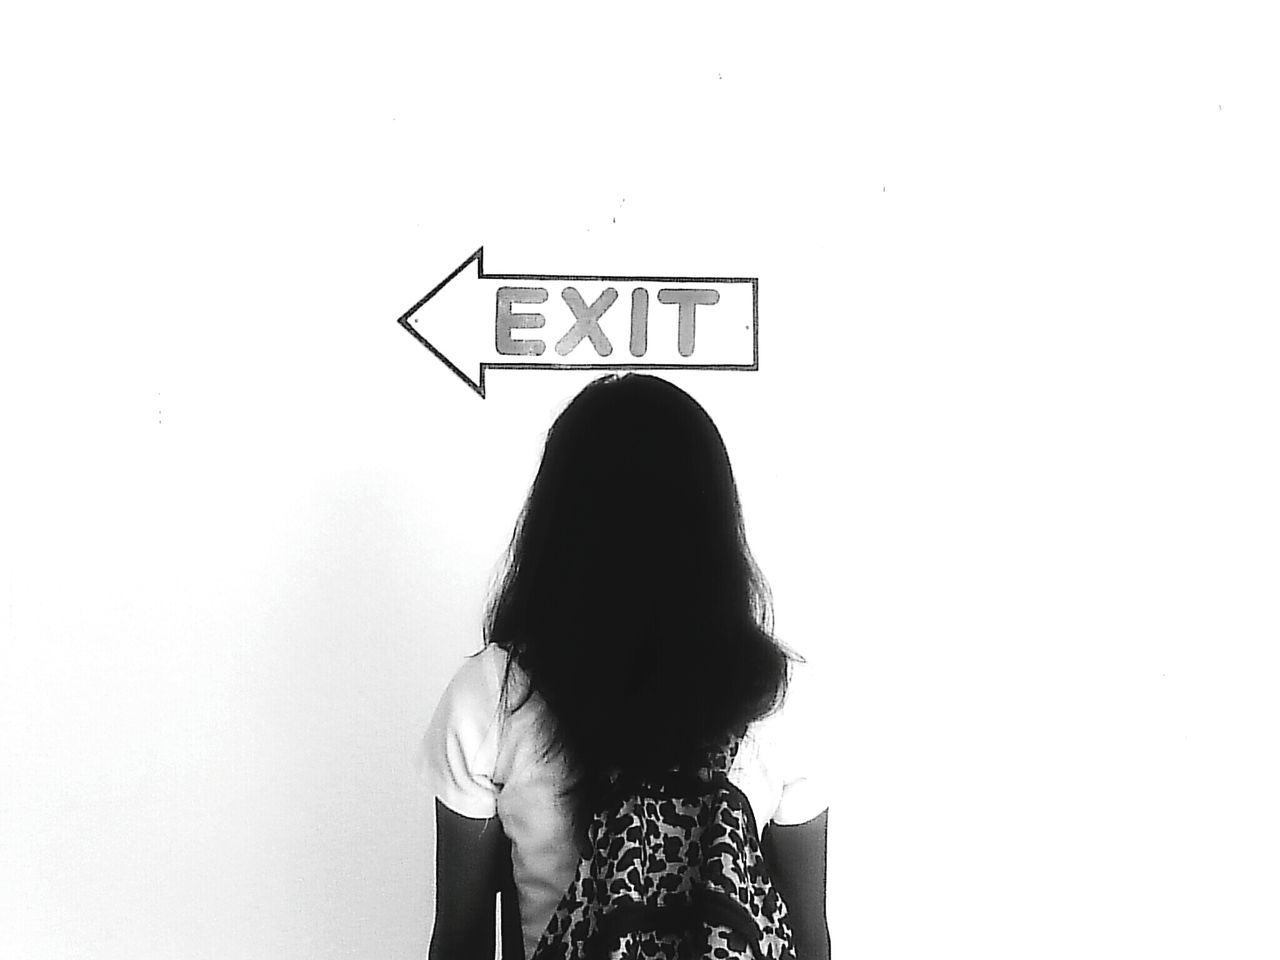 Long Goodbye every exit is a new journey — maejimercado Exit Exit Sign Text Rear View Women Communication Business Finance And Industry Standing Indoors  Adults Only Choice People Adult One Person Men Sticky Young Adult Young Women